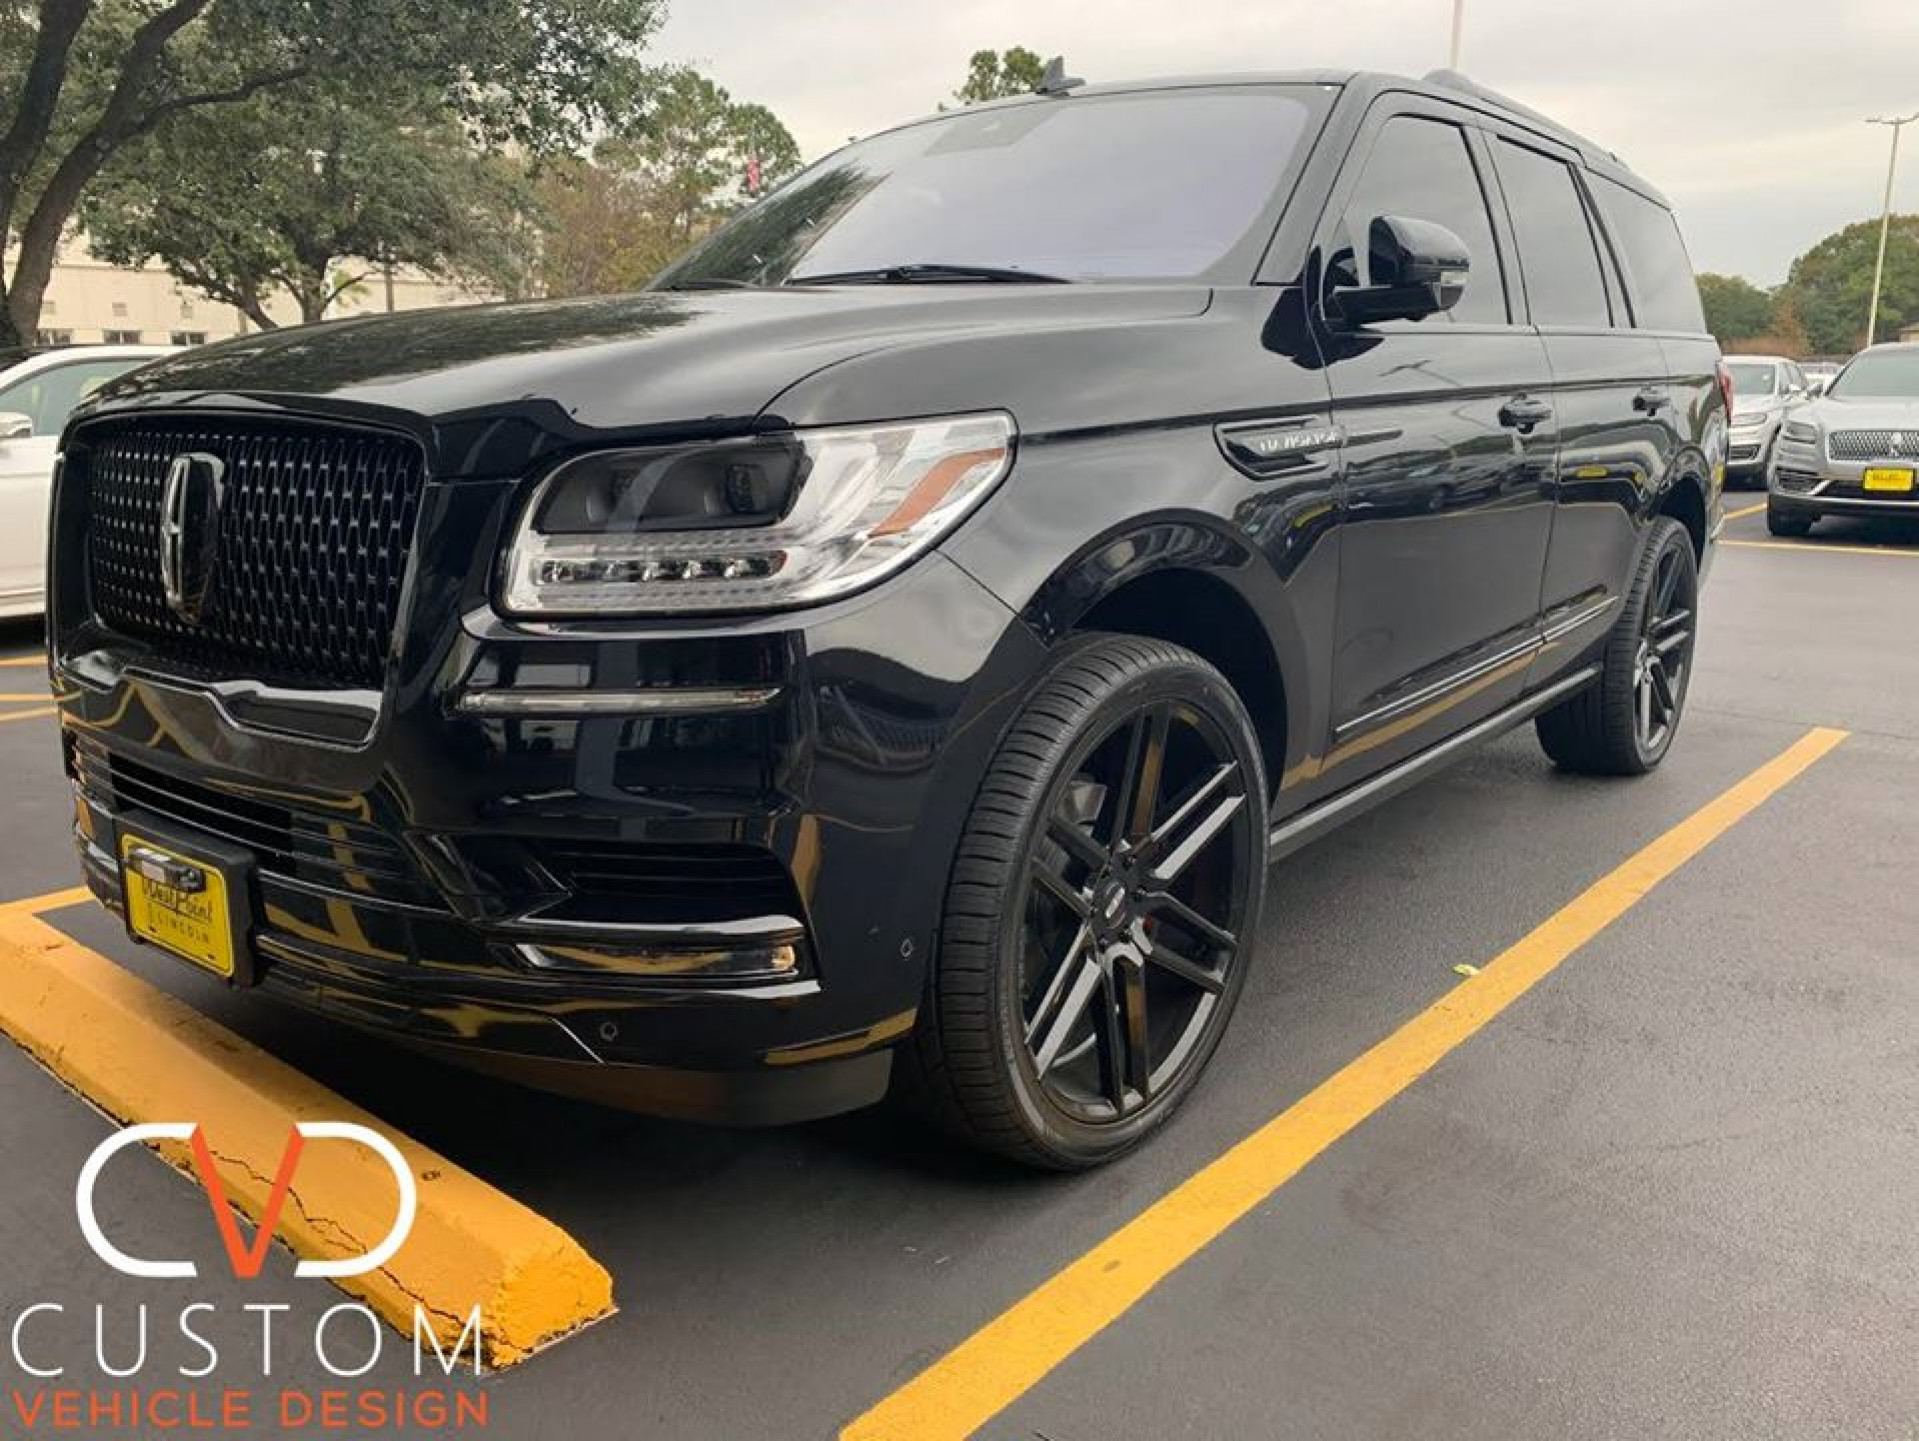 "2020 Lincoln Navigator with Status Alloy Titan wheels and 24"" Vogue Signature V Tyres ⠀"